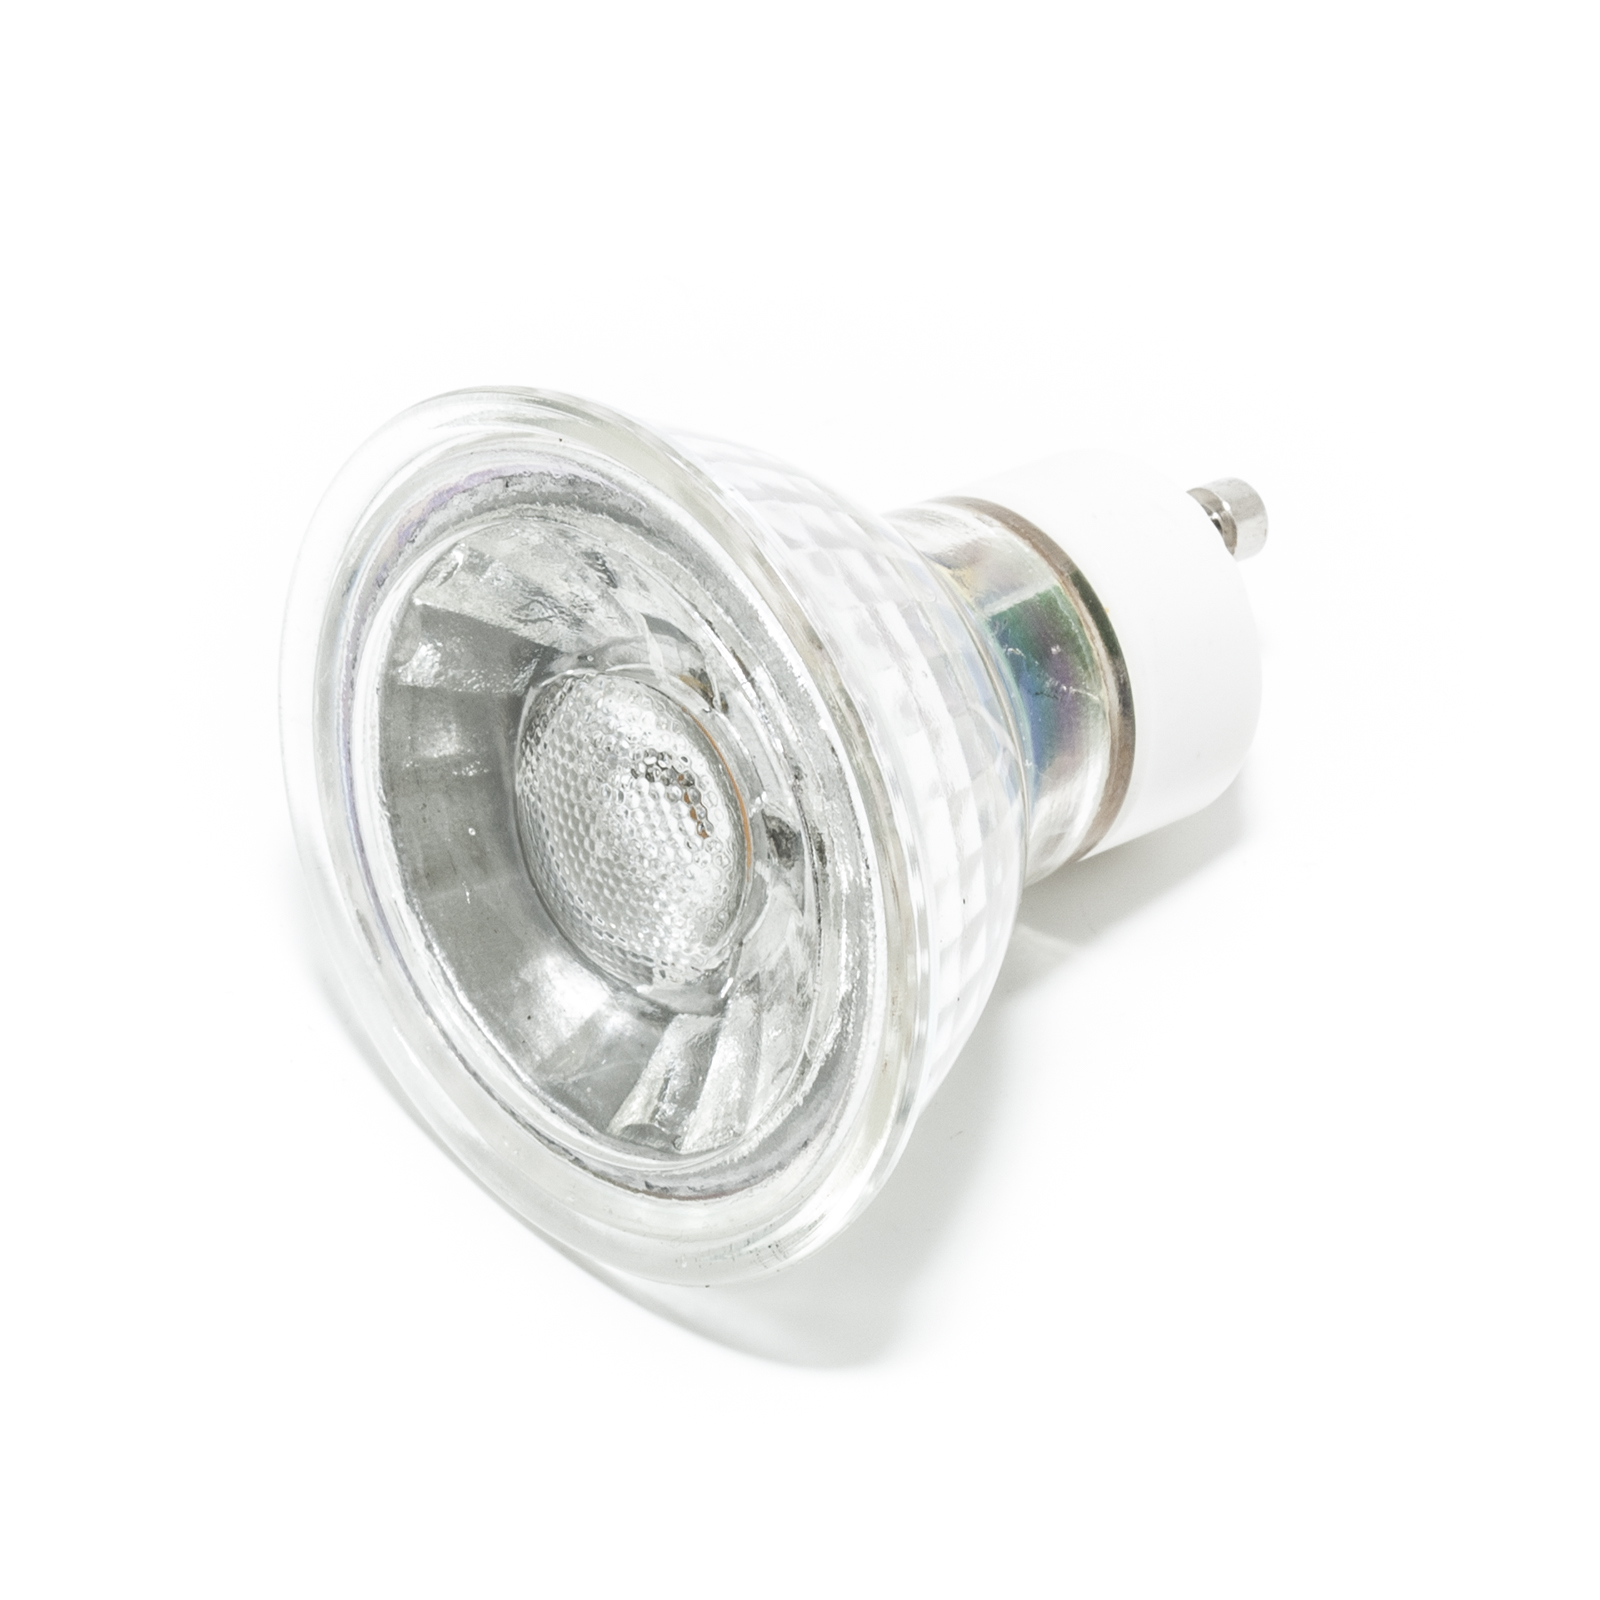 Led Spot Gu10 Details About Lamp Led Spotlight Spot Gu10 5 W 30 Degrees Light 230v Bulb W Watt